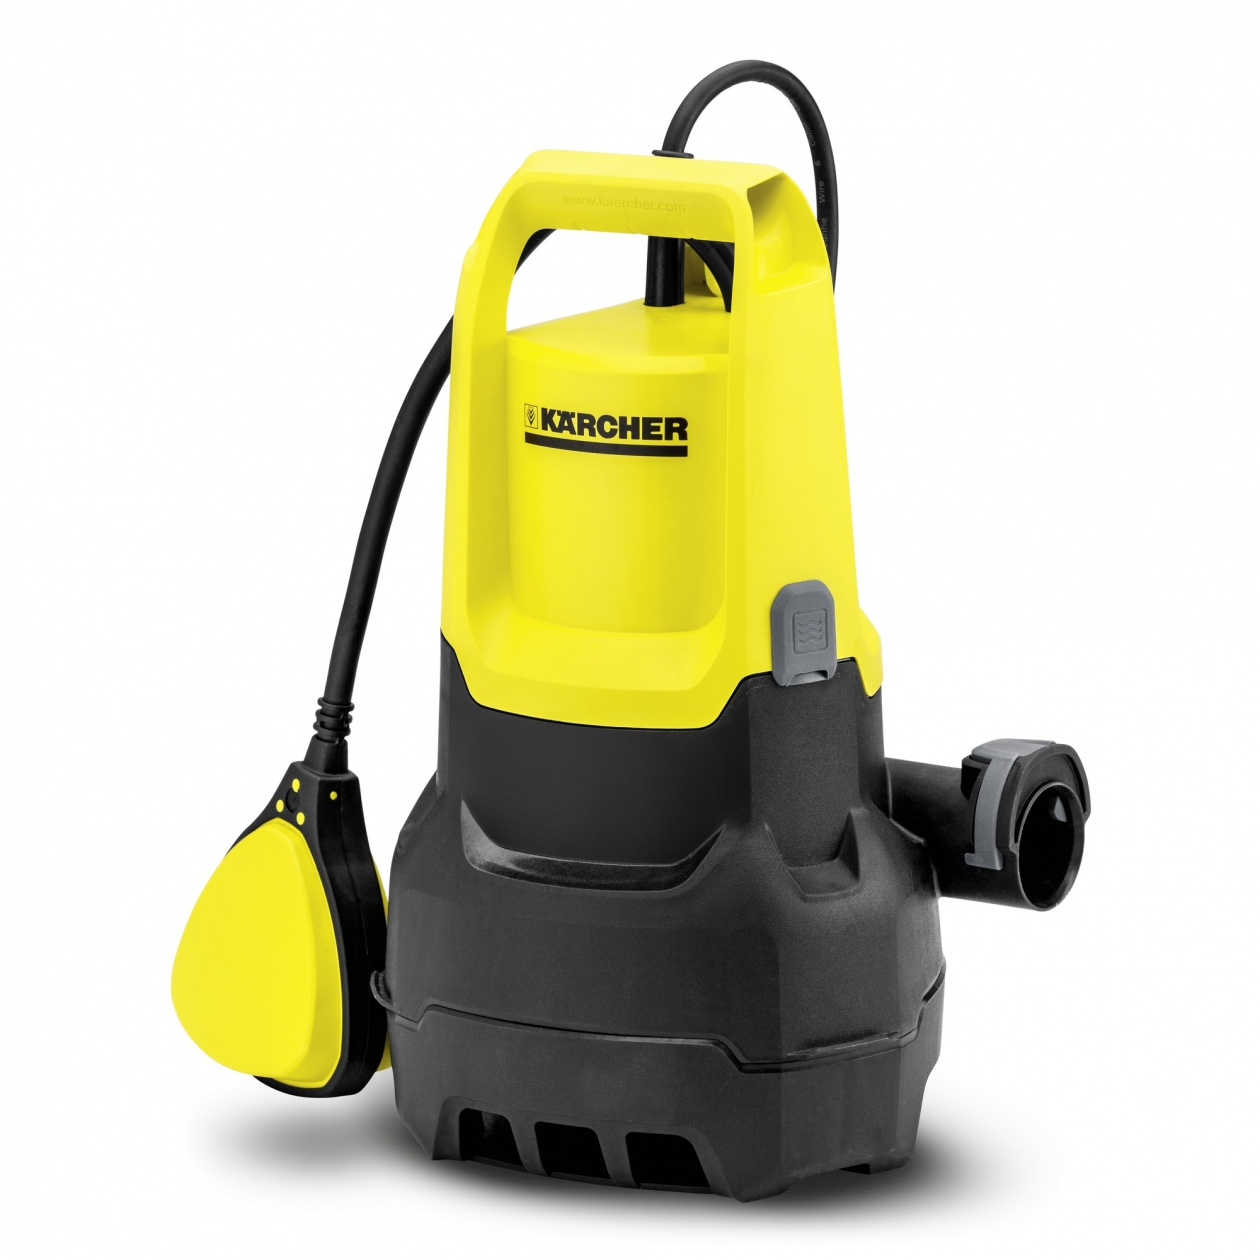 karcher sp 3 dirt drainage pump a1 pressure washers. Black Bedroom Furniture Sets. Home Design Ideas